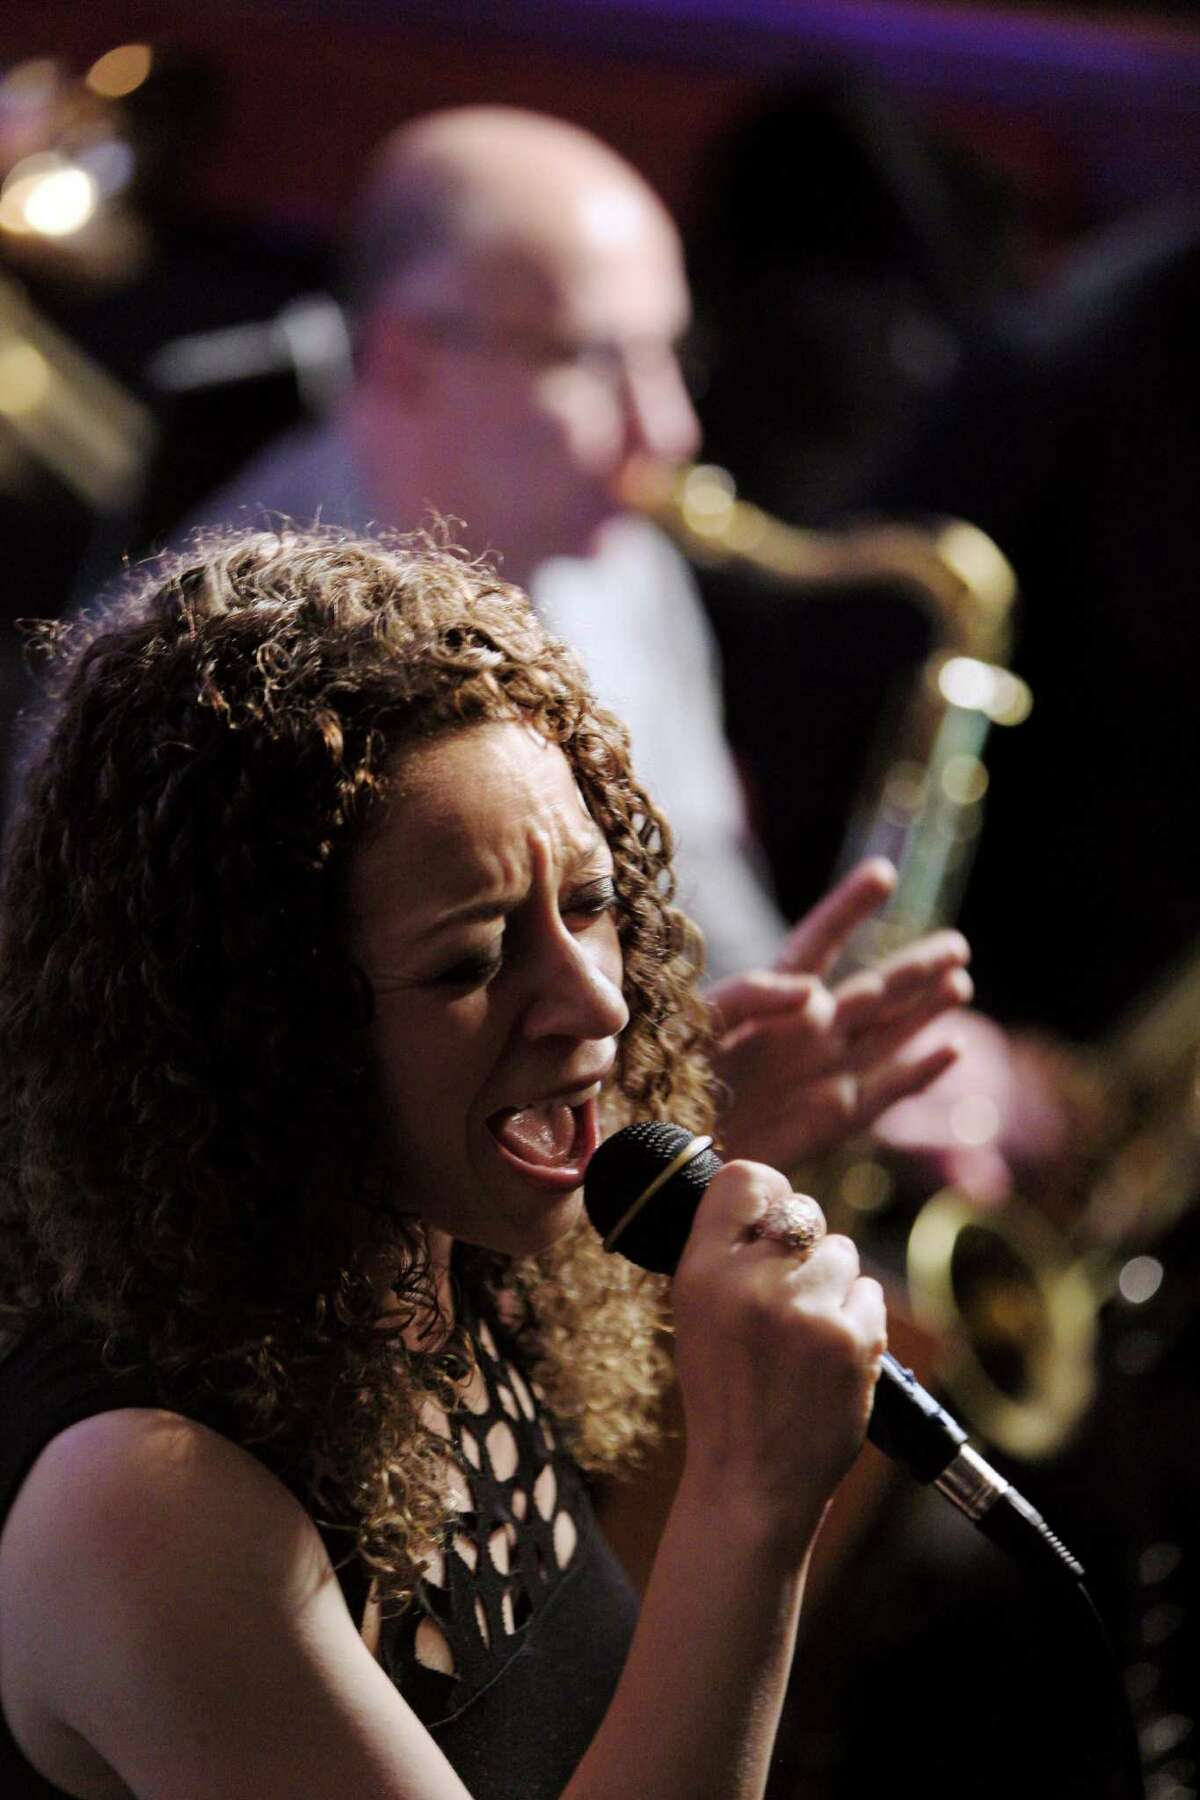 """Stamford, Ct. 6.20.16 --- Ninth Note Jazz Supper Club --- Jazz Singer Stephanie Harrison of Stamford joins the 9th Note Jazz Orchestra Monday evening and belts out a rendition of """"Natural Woman,"""" much to the amazement of the crowd and the Big Band."""